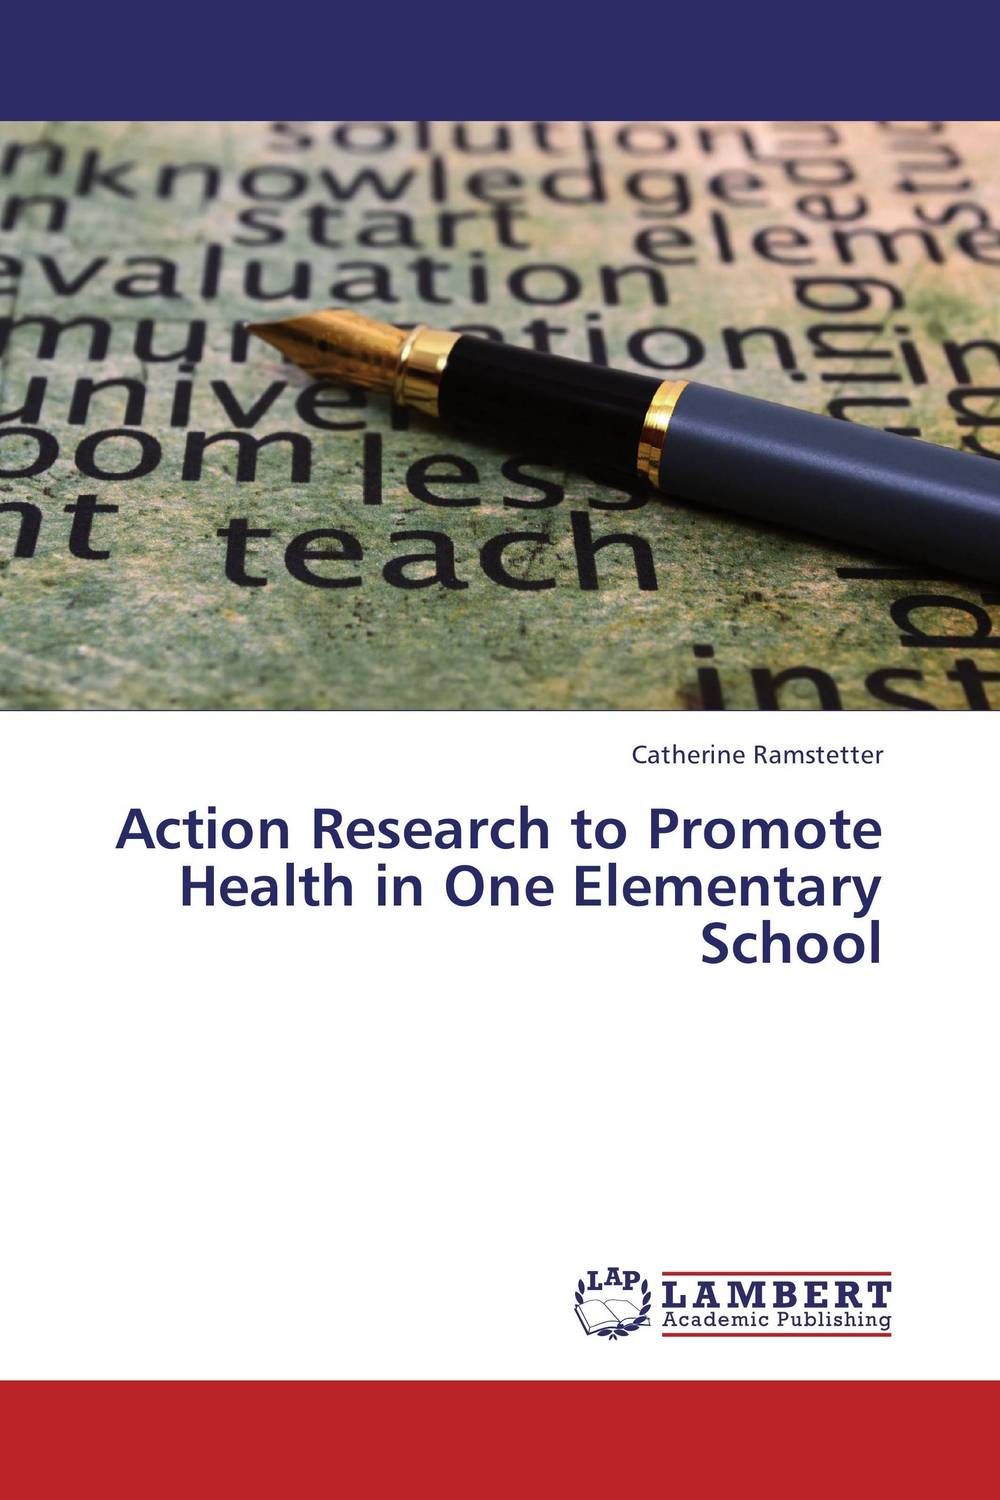 Action Research to Promote Health in One Elementary School